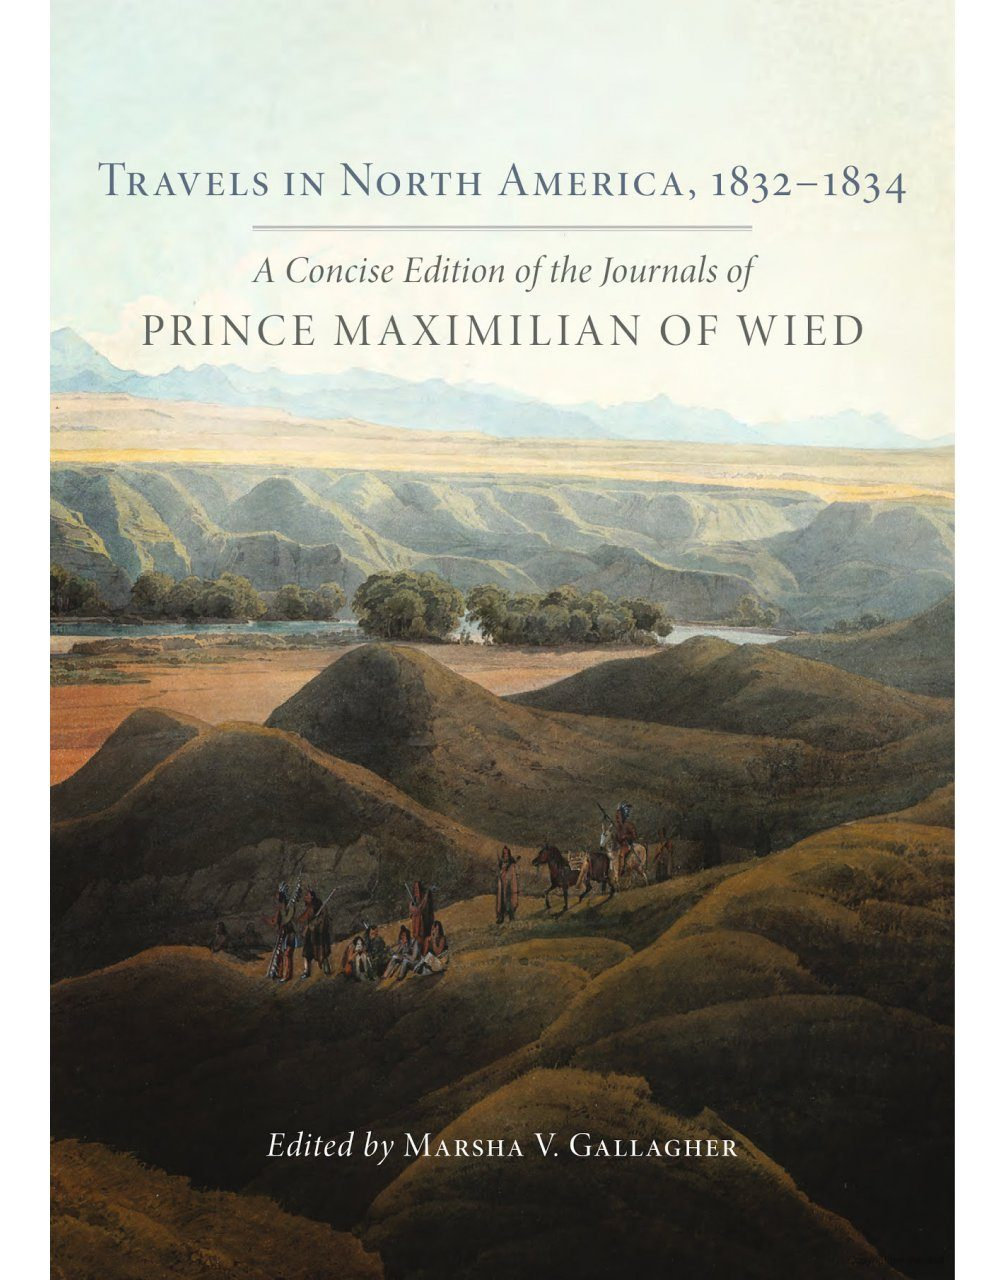 Travels in North America, 1832-1834